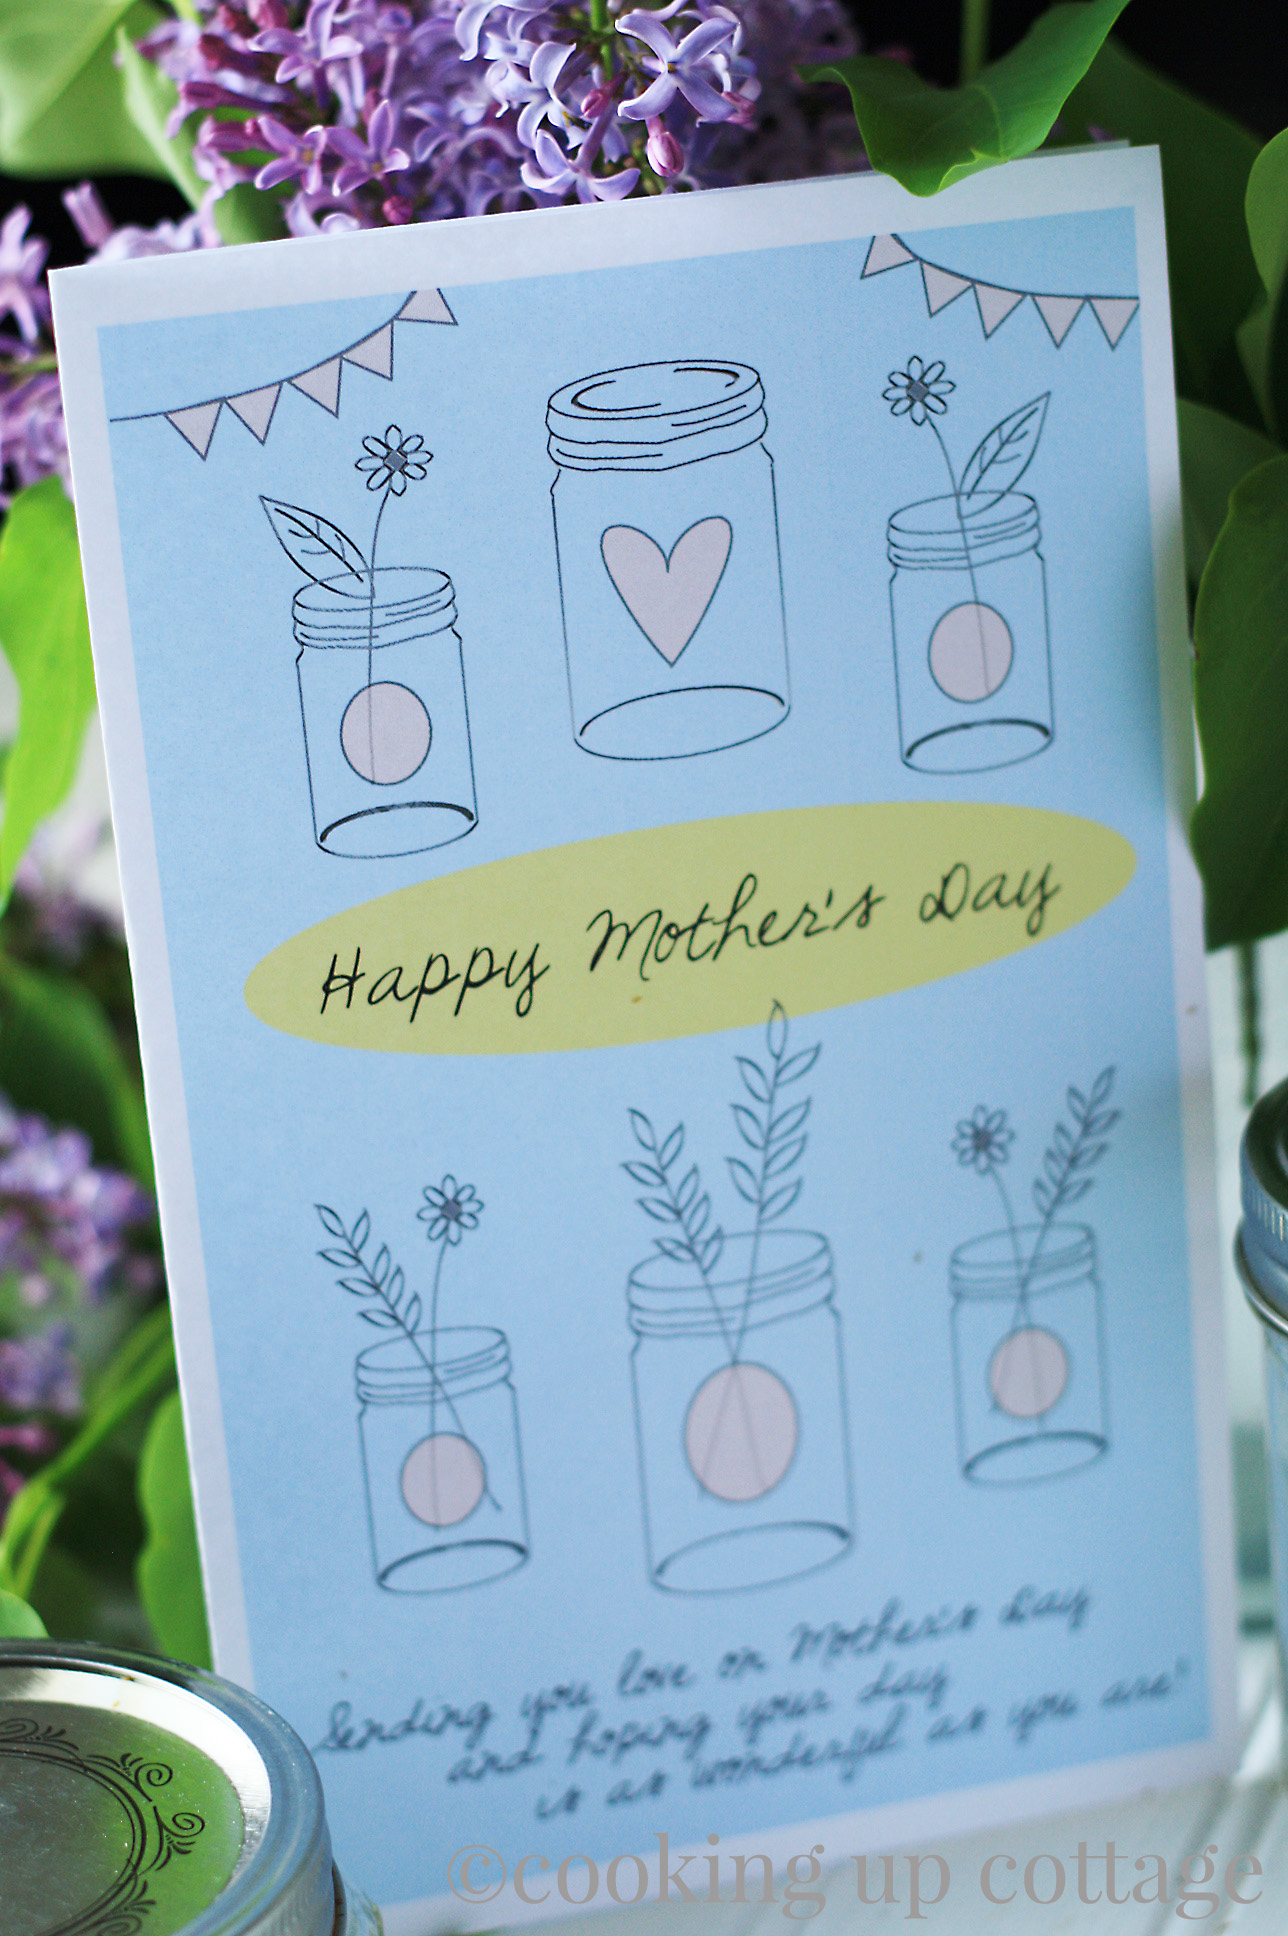 Free Printable Mother S Day Card Cooking Up Cottage